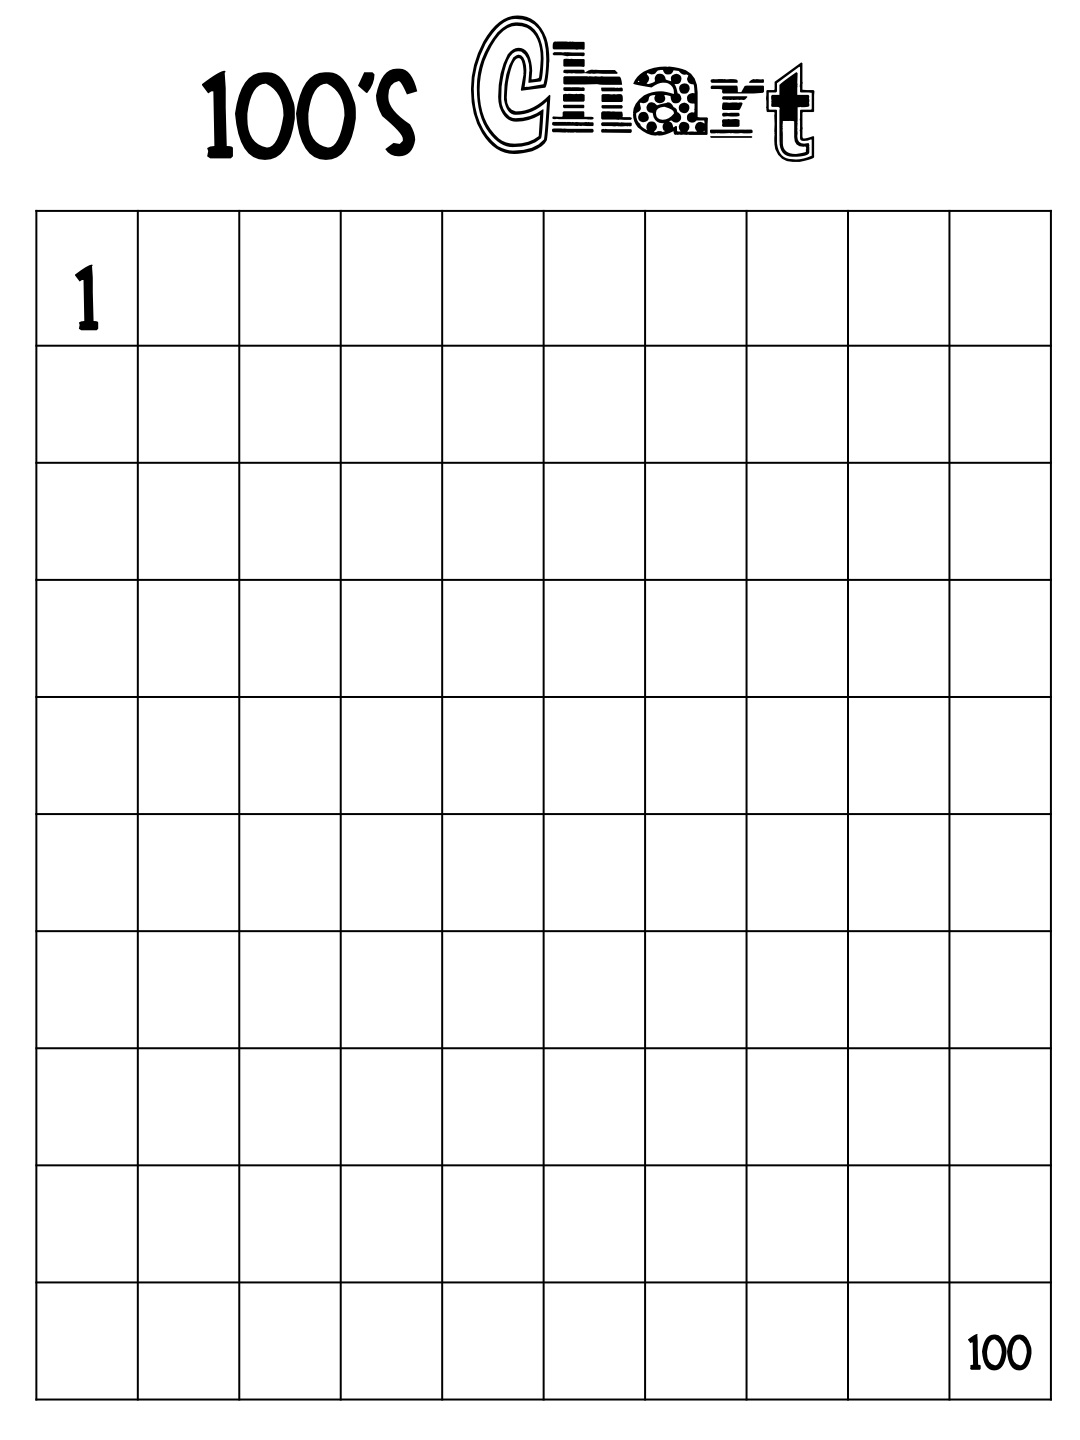 Worksheet Blank 100 Chart For Kindergarten 100 chart clipart kid fast finisher folder i haven t quite made these but m going to for